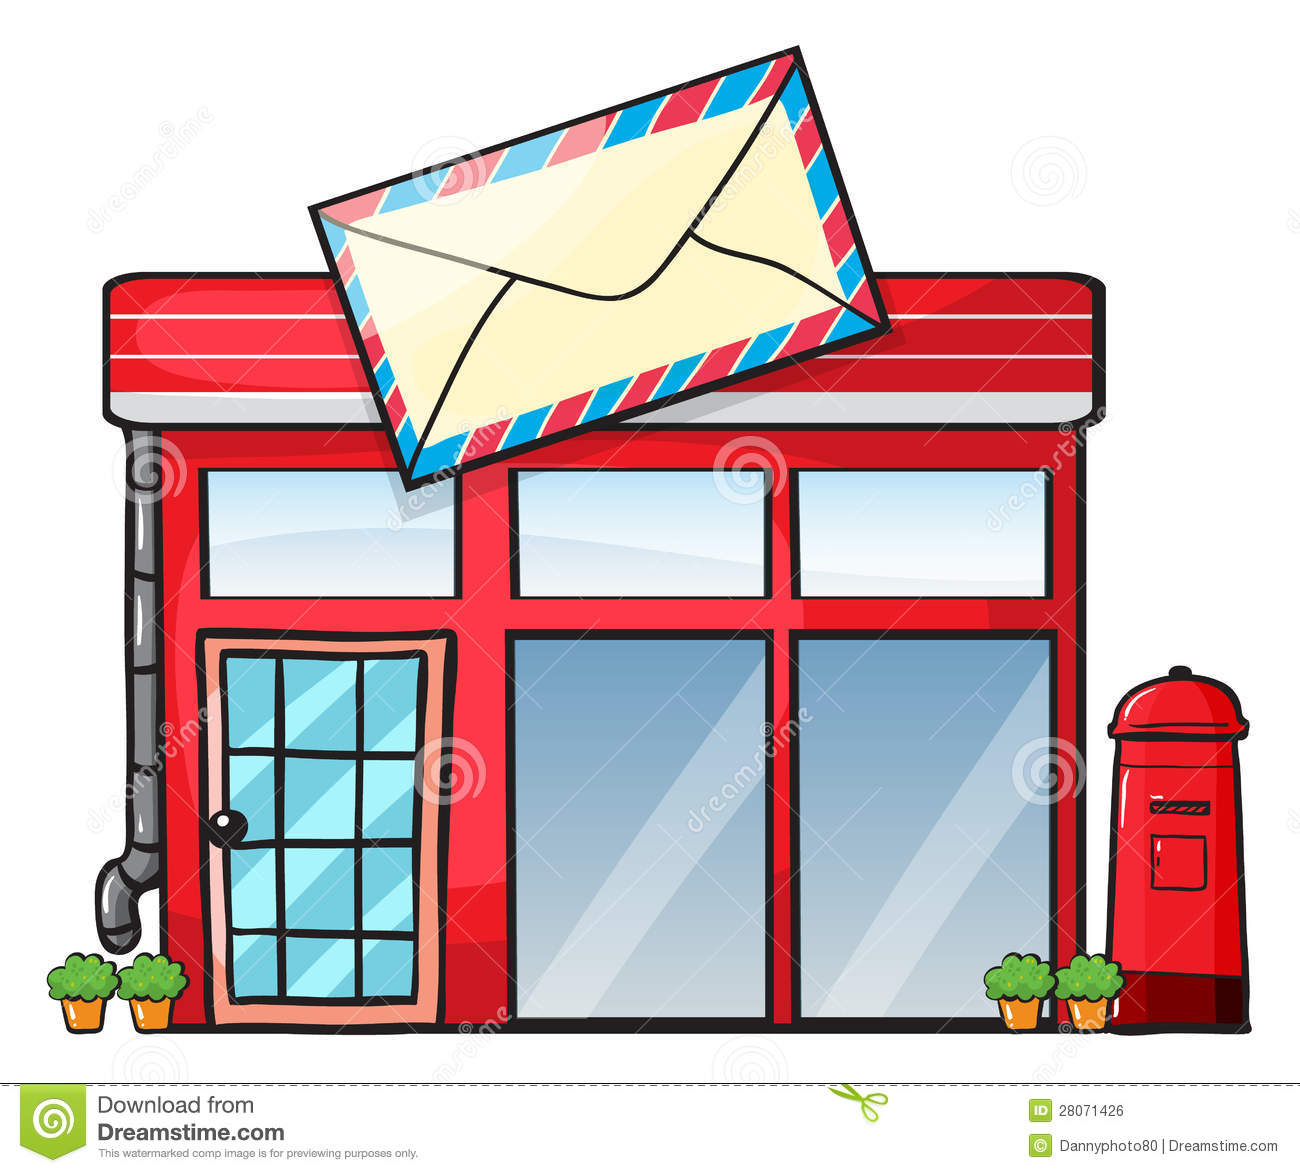 Un bureau de poste illustration stock illustration du - Appeler un bureau de poste ...